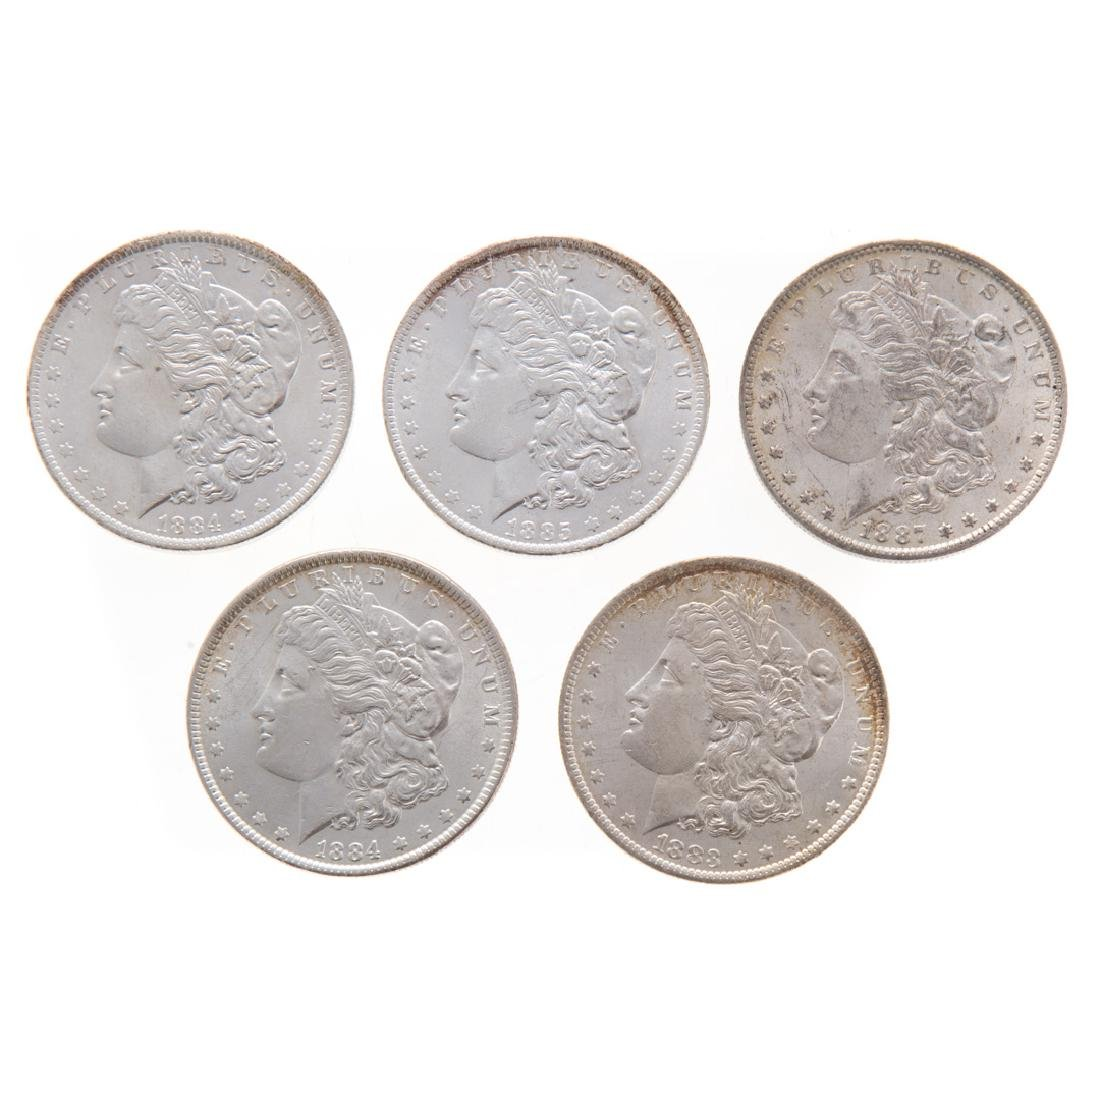 [US] Five Uncirculated Morgan Dollars 1883-1887